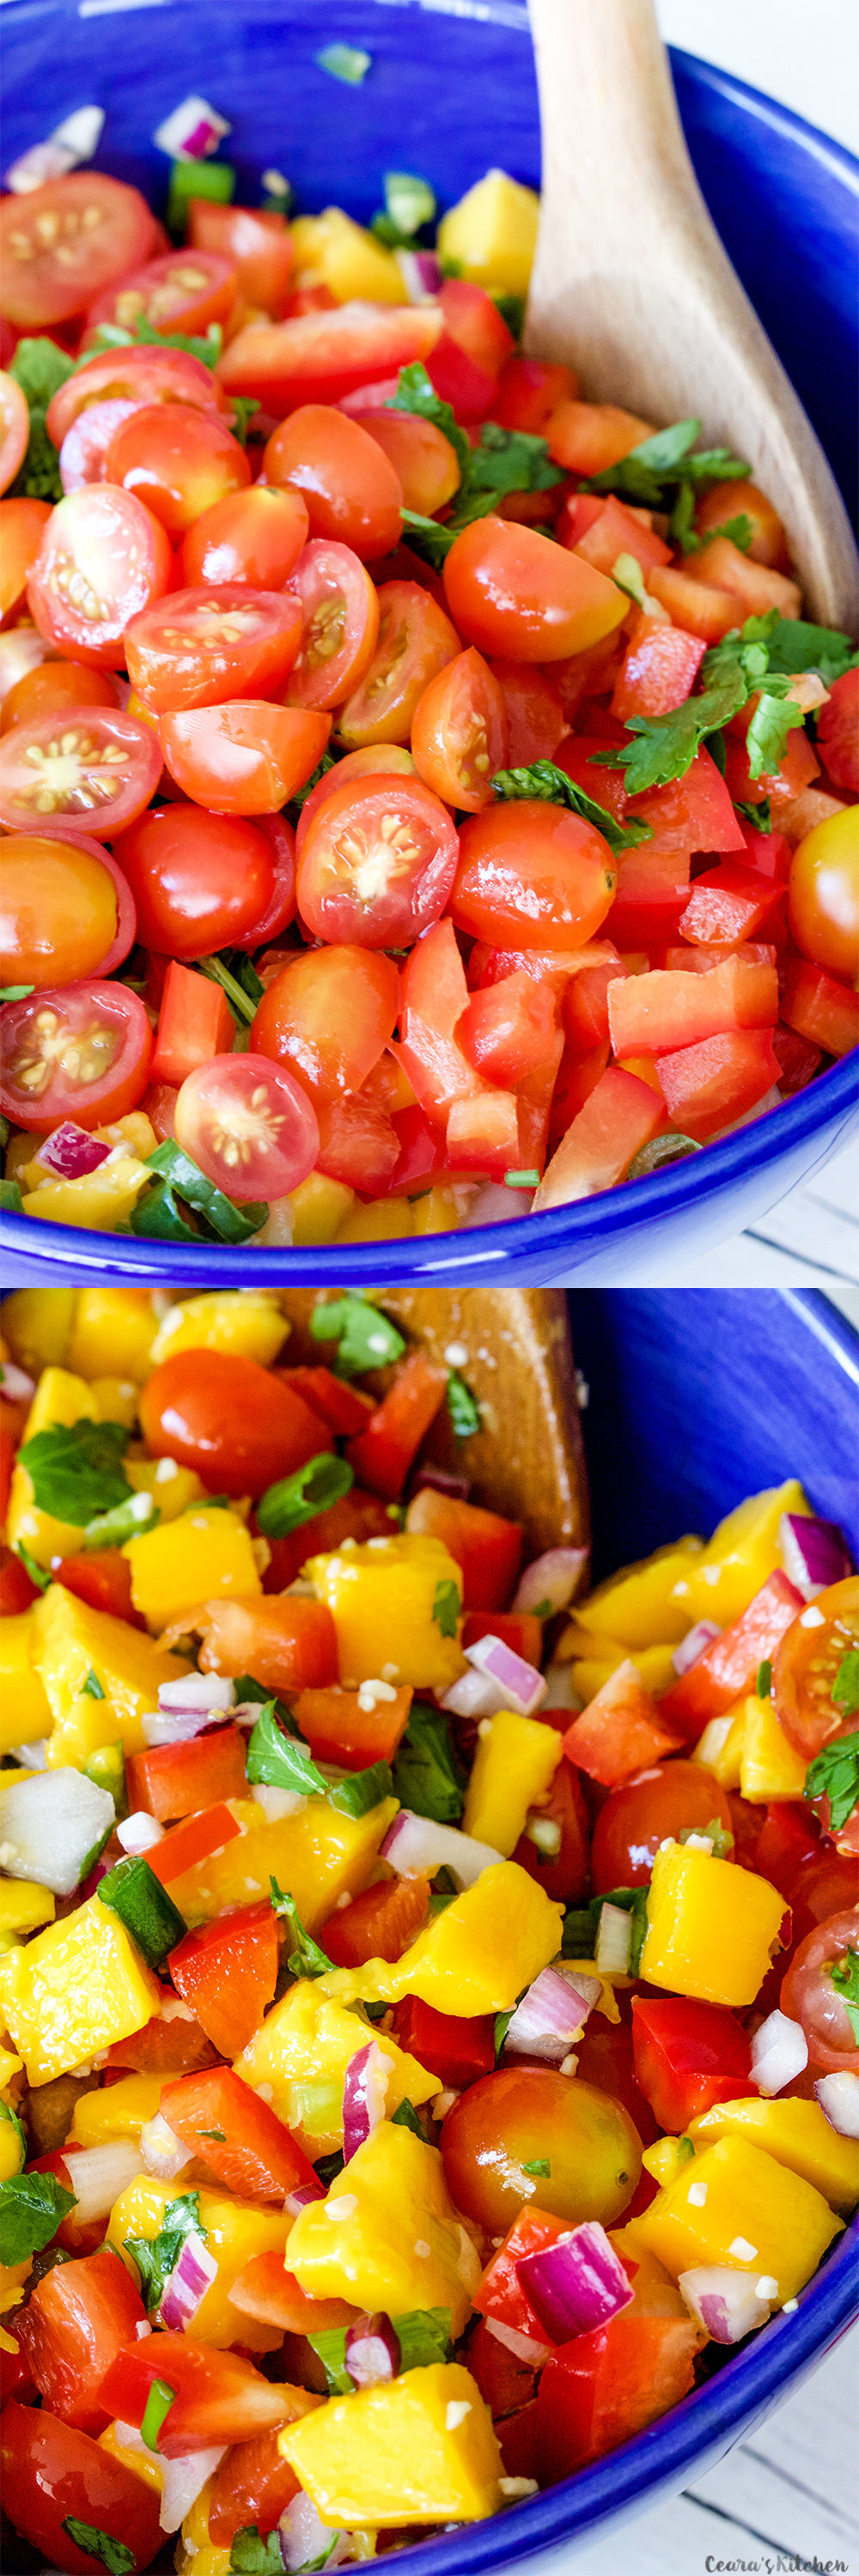 Mango Salsa lemon lime vinaigrette